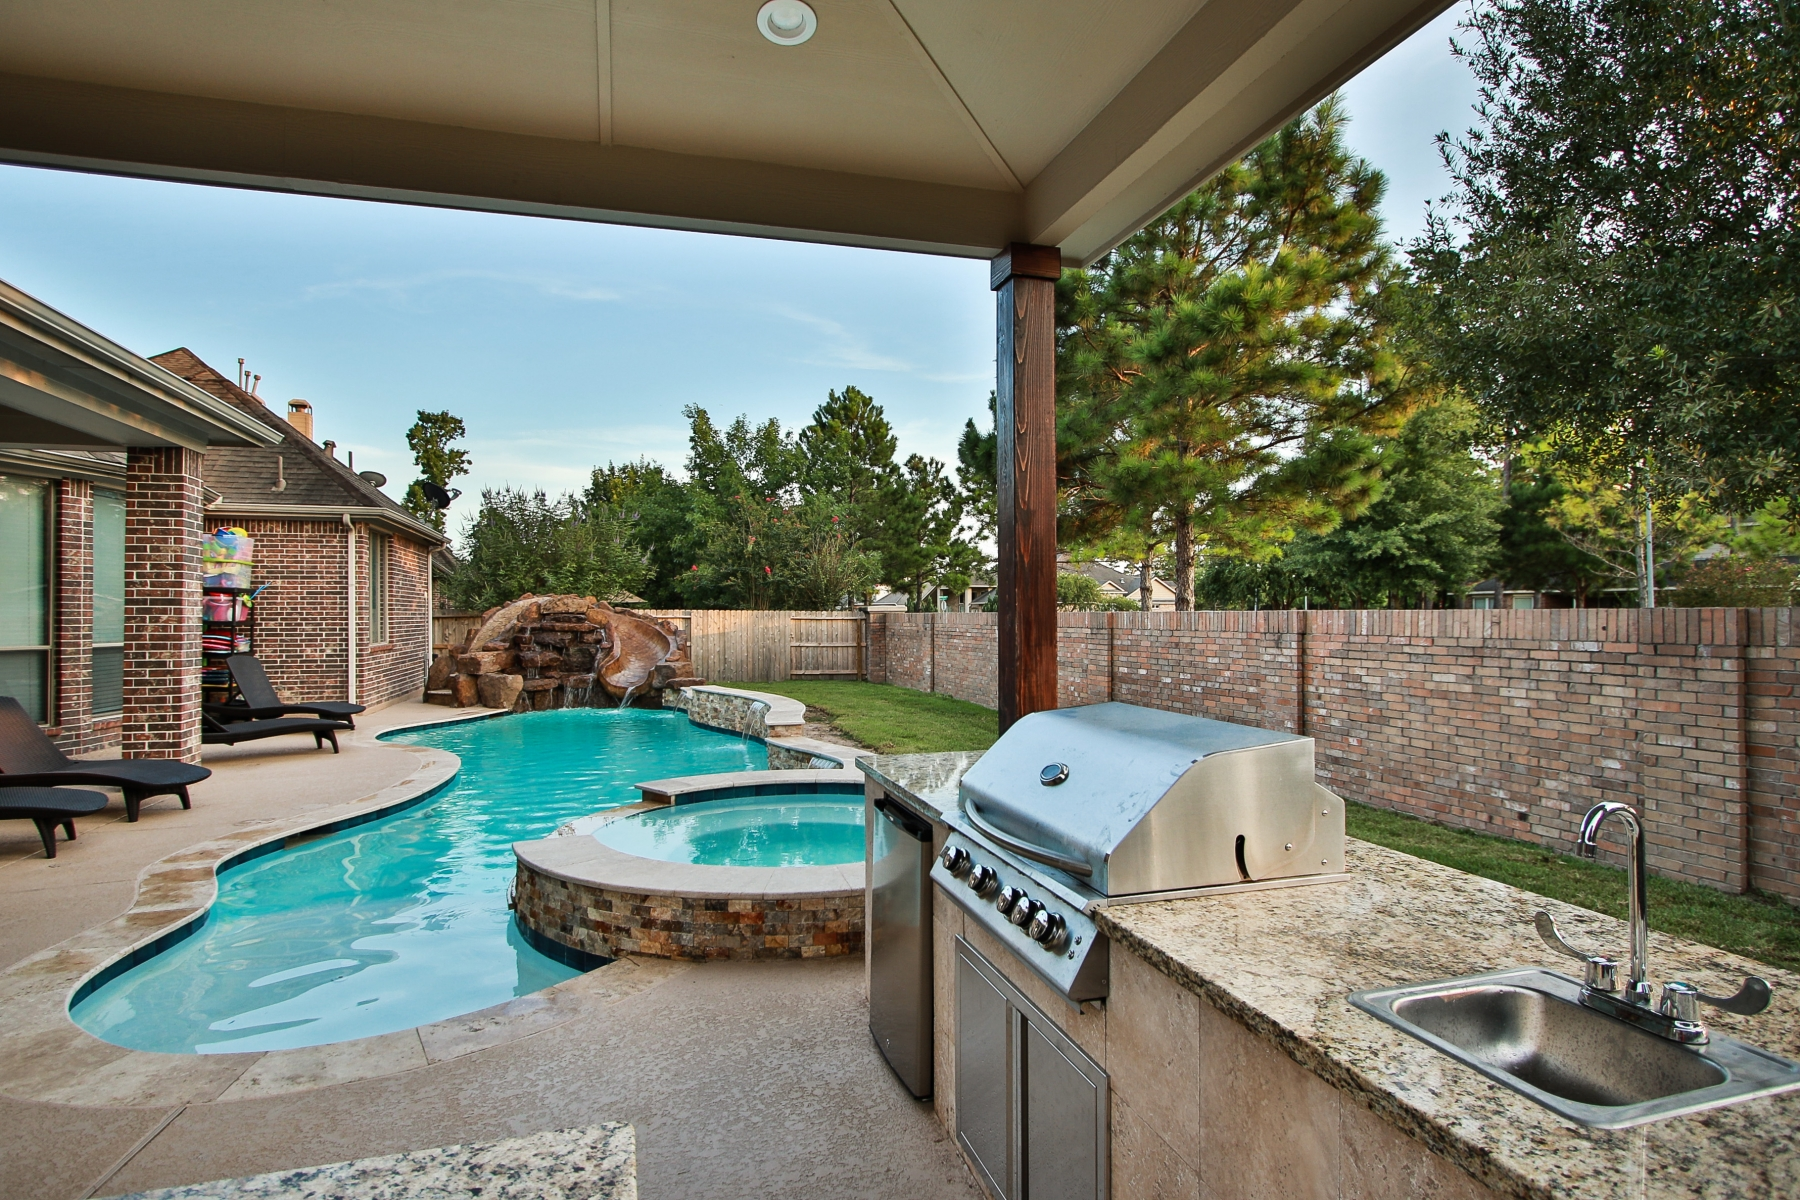 Freeform Pool Viewed From Outdoor Kitchen and Covered Patio